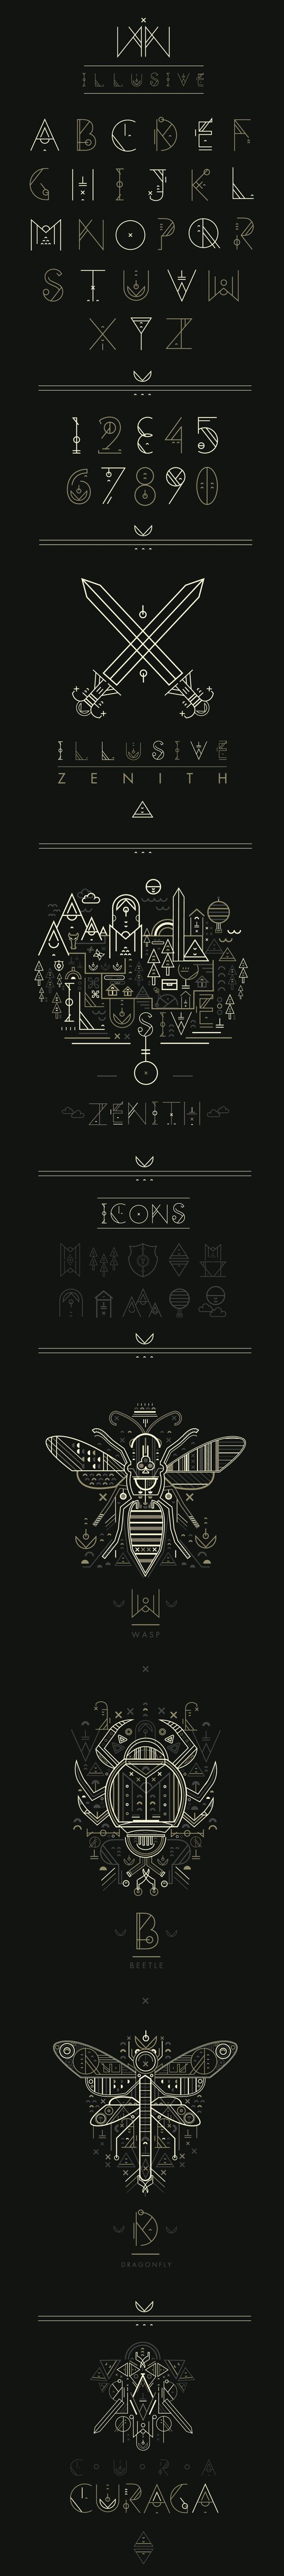 Illusive by Petros Afshar via Behance Hipster